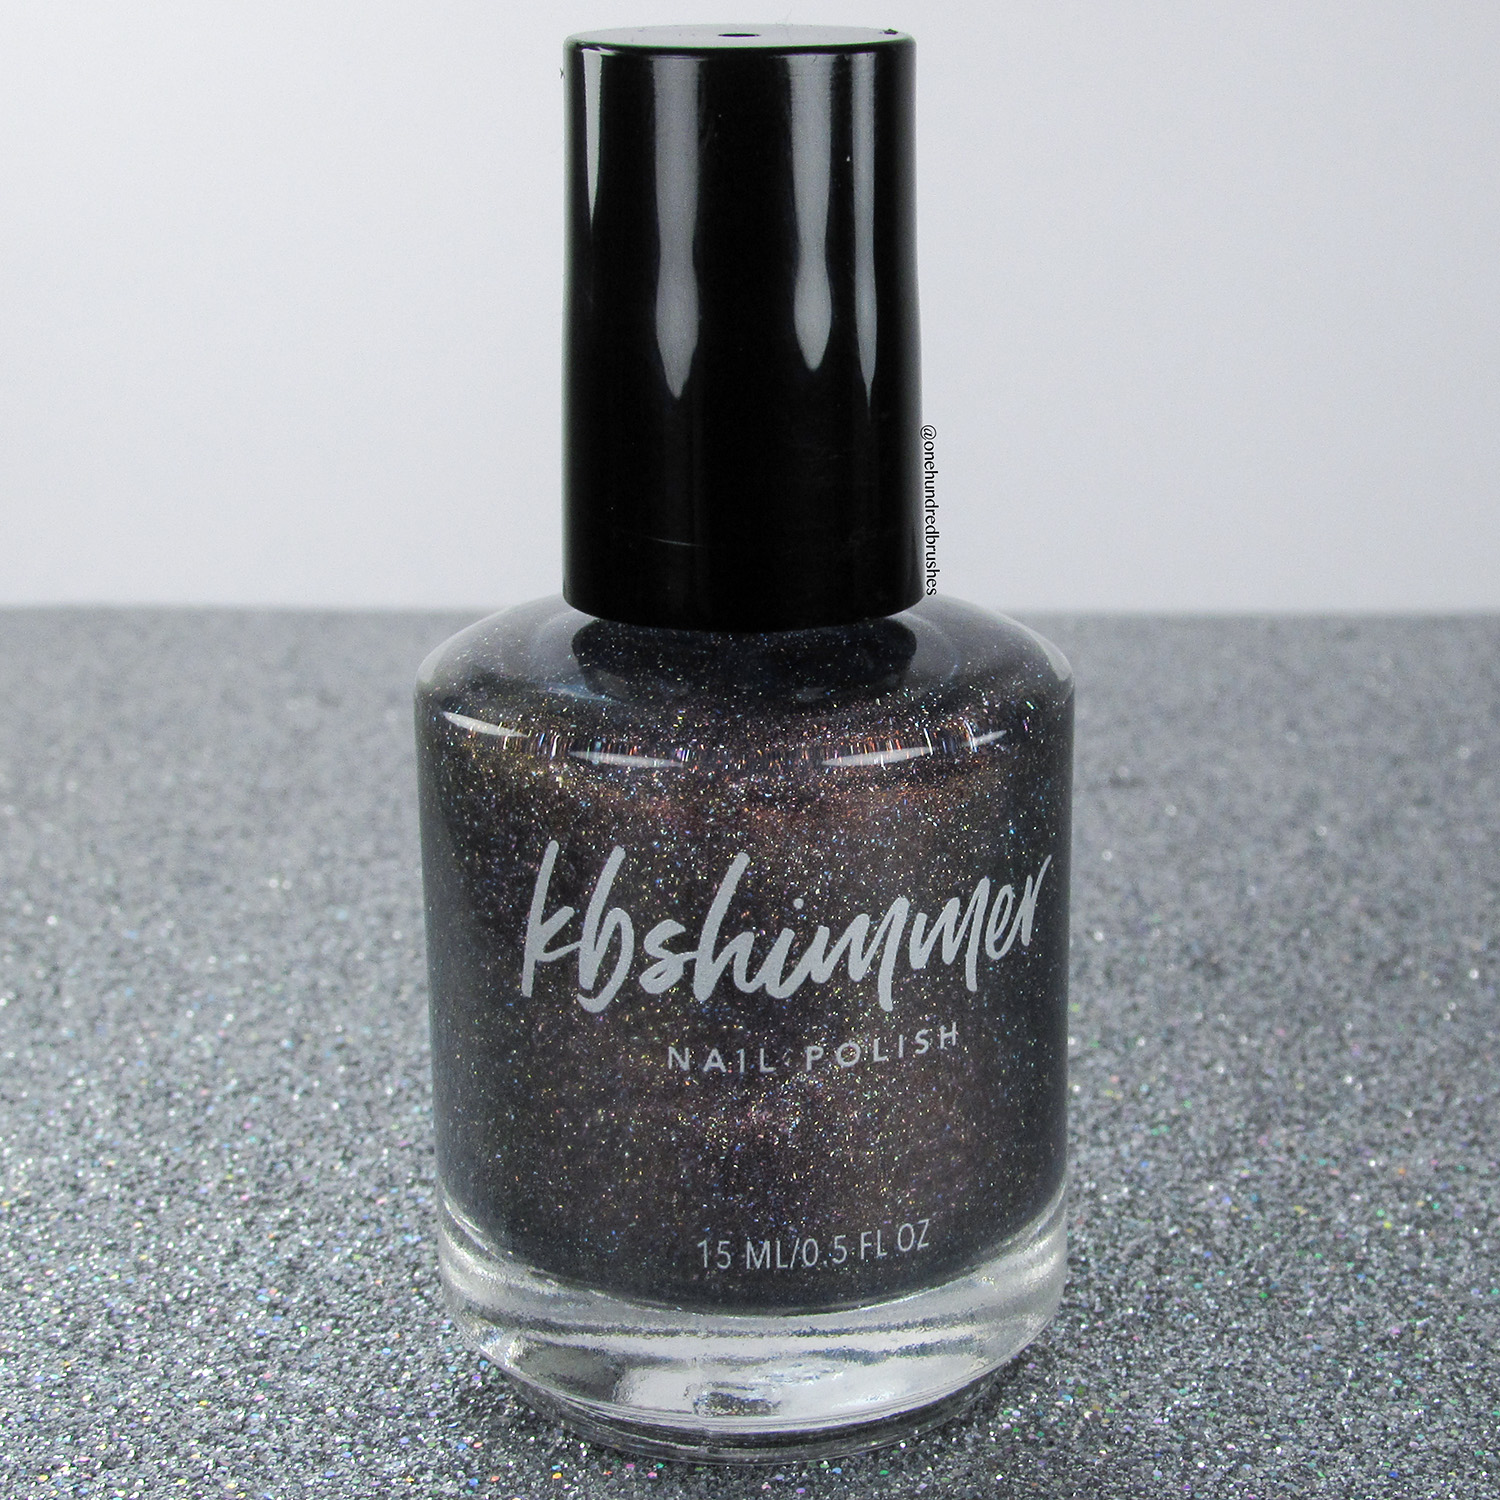 un-Staple - bottle, side - KBShimmer - May 2018 Polish Pickup - holographic - office space - 90's pop culture